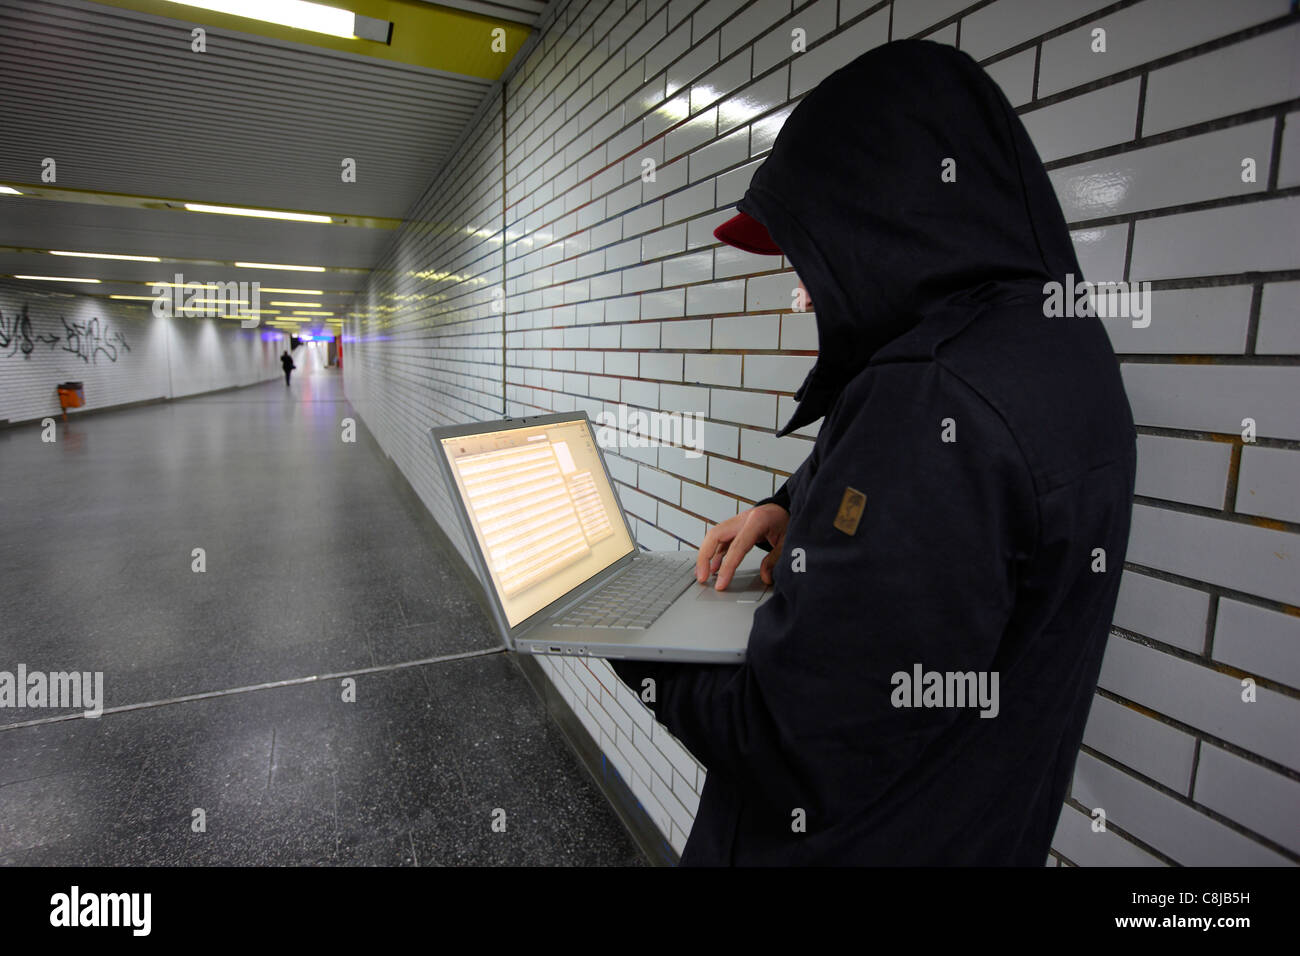 Computer user, hacker, sits conspiratorially with a laptop, in a subway station. Symbol picture, computer-Internet - Stock Image